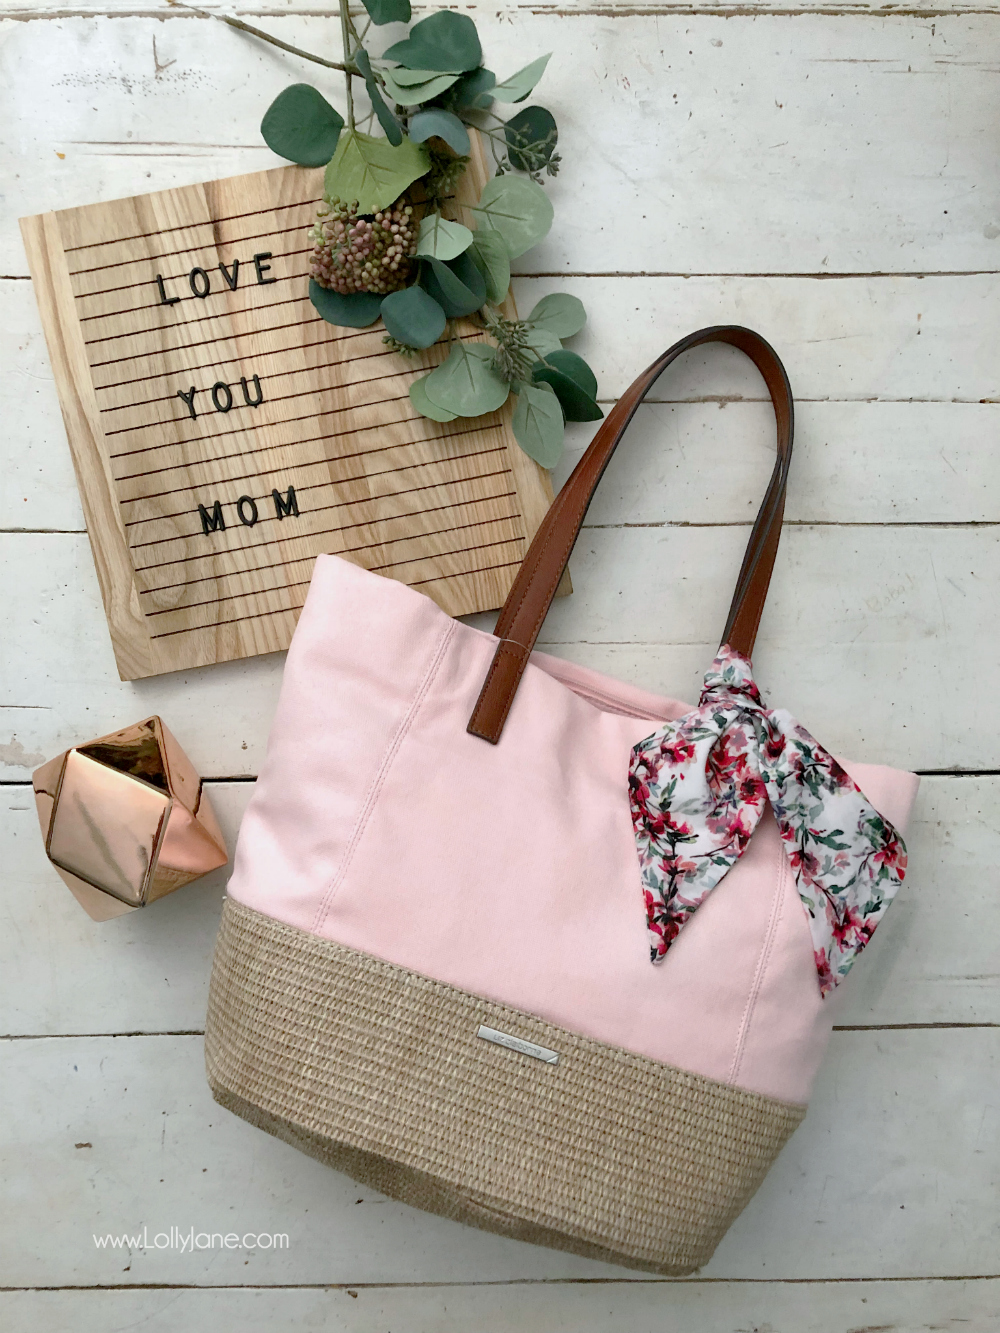 Easy Mothers Day Gift Ideas! Love this letterboard, tote, or candle... I would love one! ;)